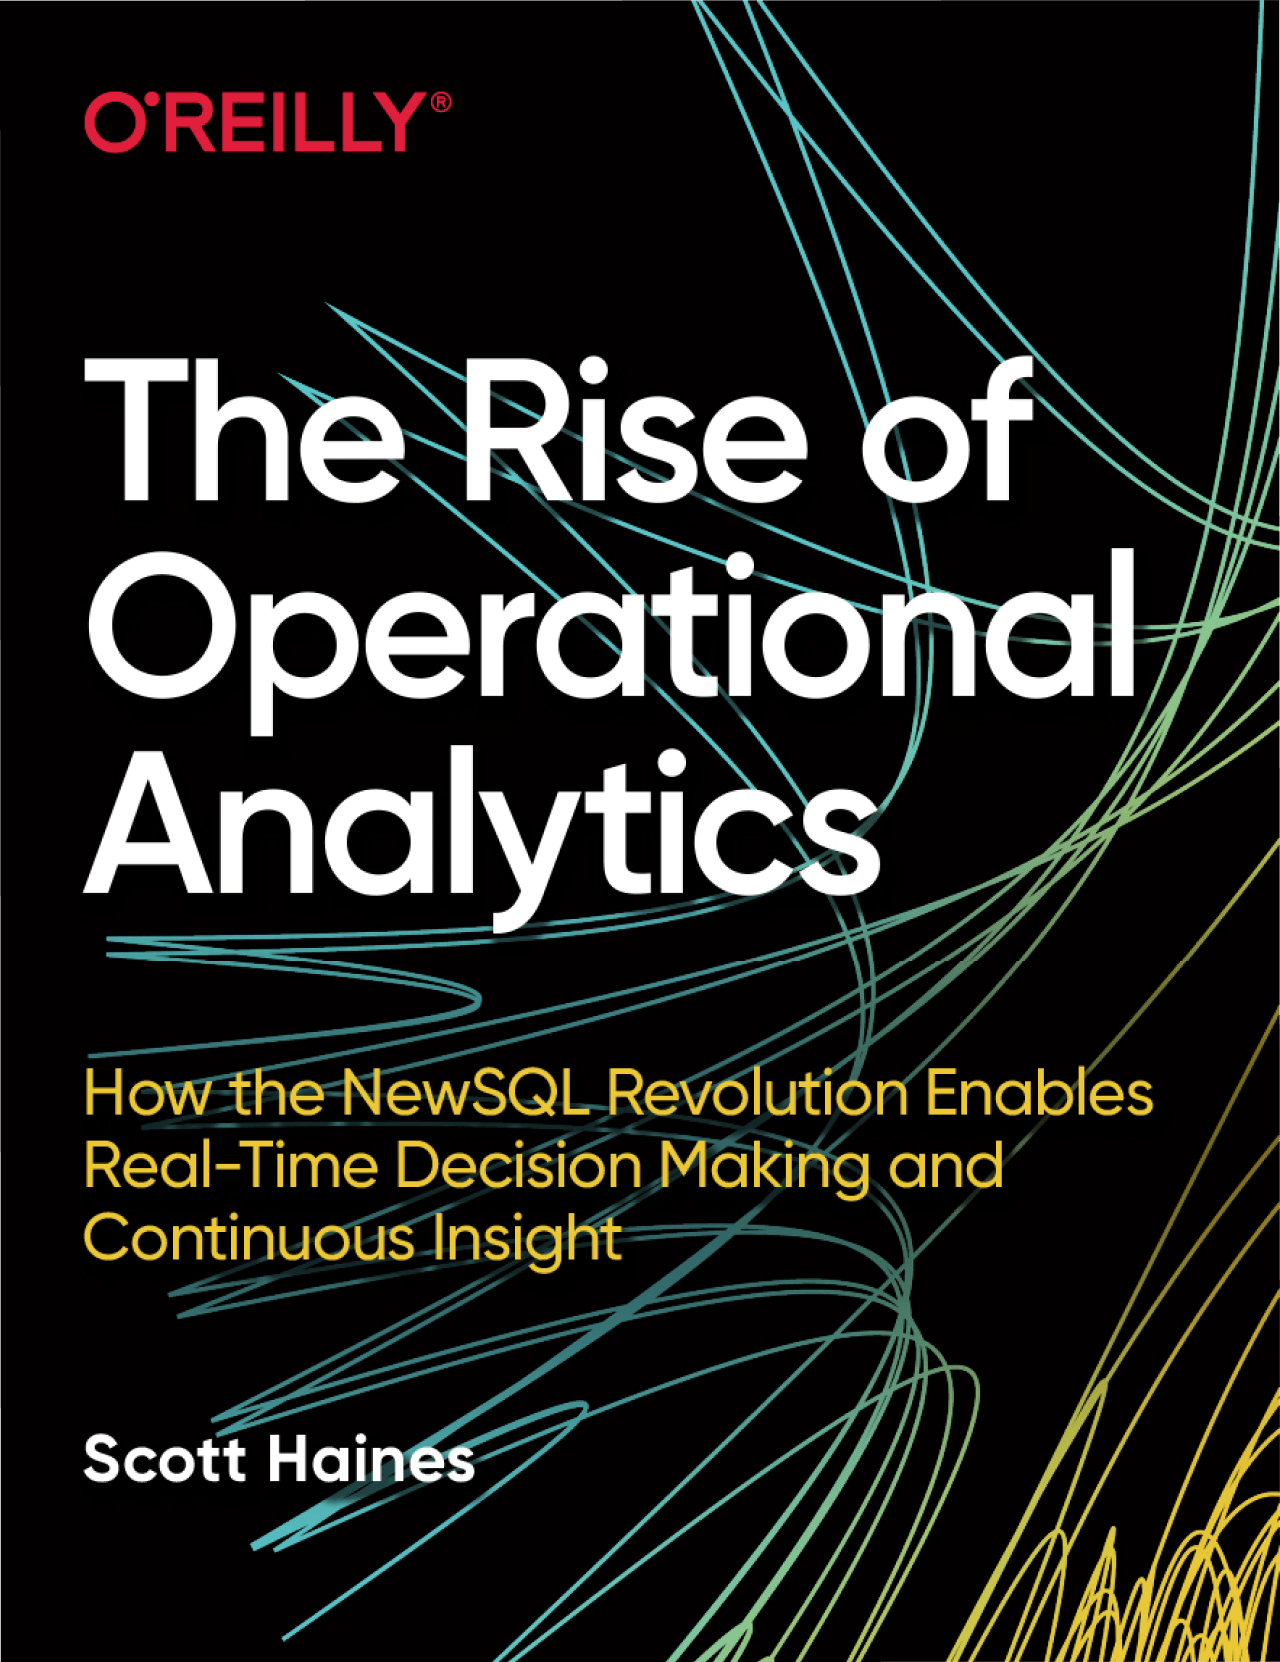 O'Reilly Operational Analytics Ebook Image